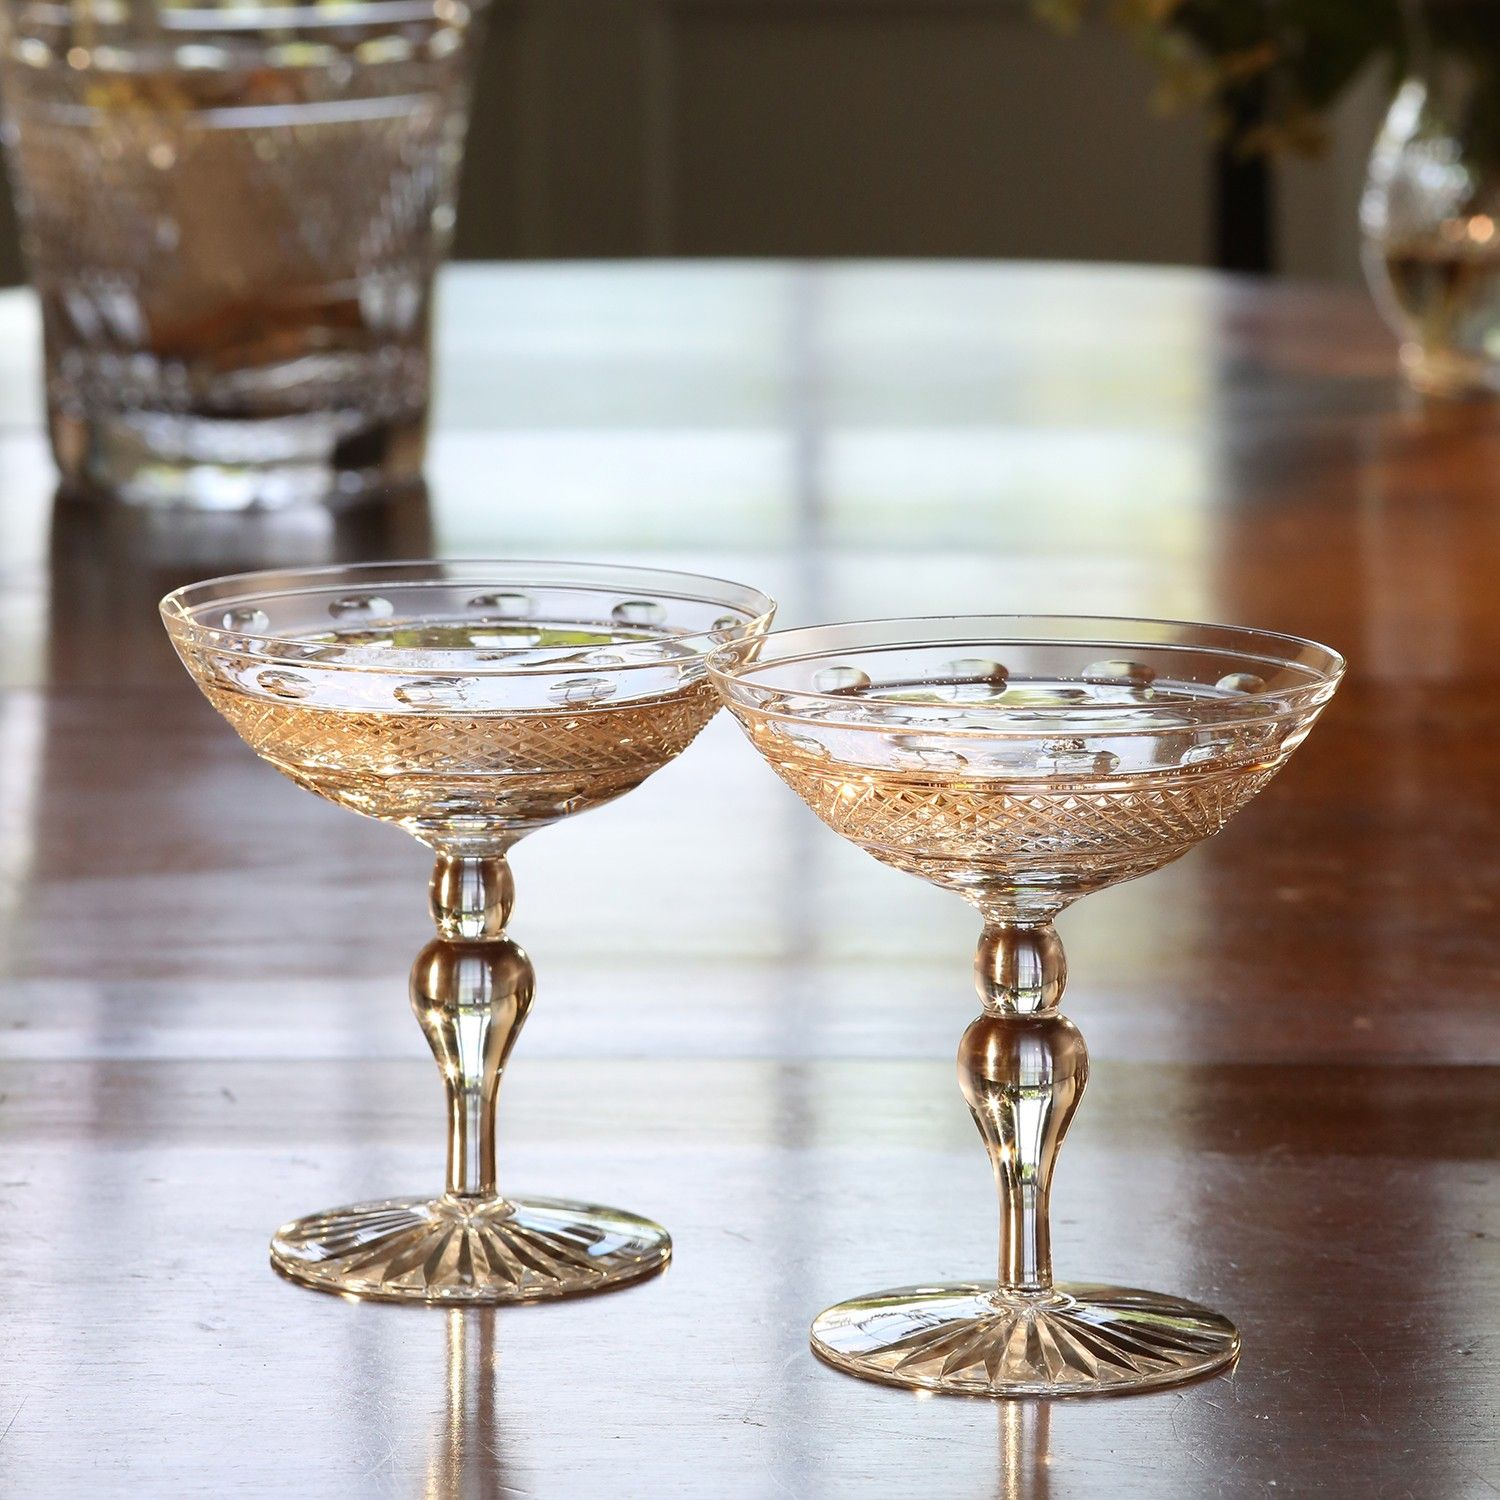 Cumbria Crystal Champagne Saucers Champagne Saucers Crystal Champagne Saucers Crystal Champagne